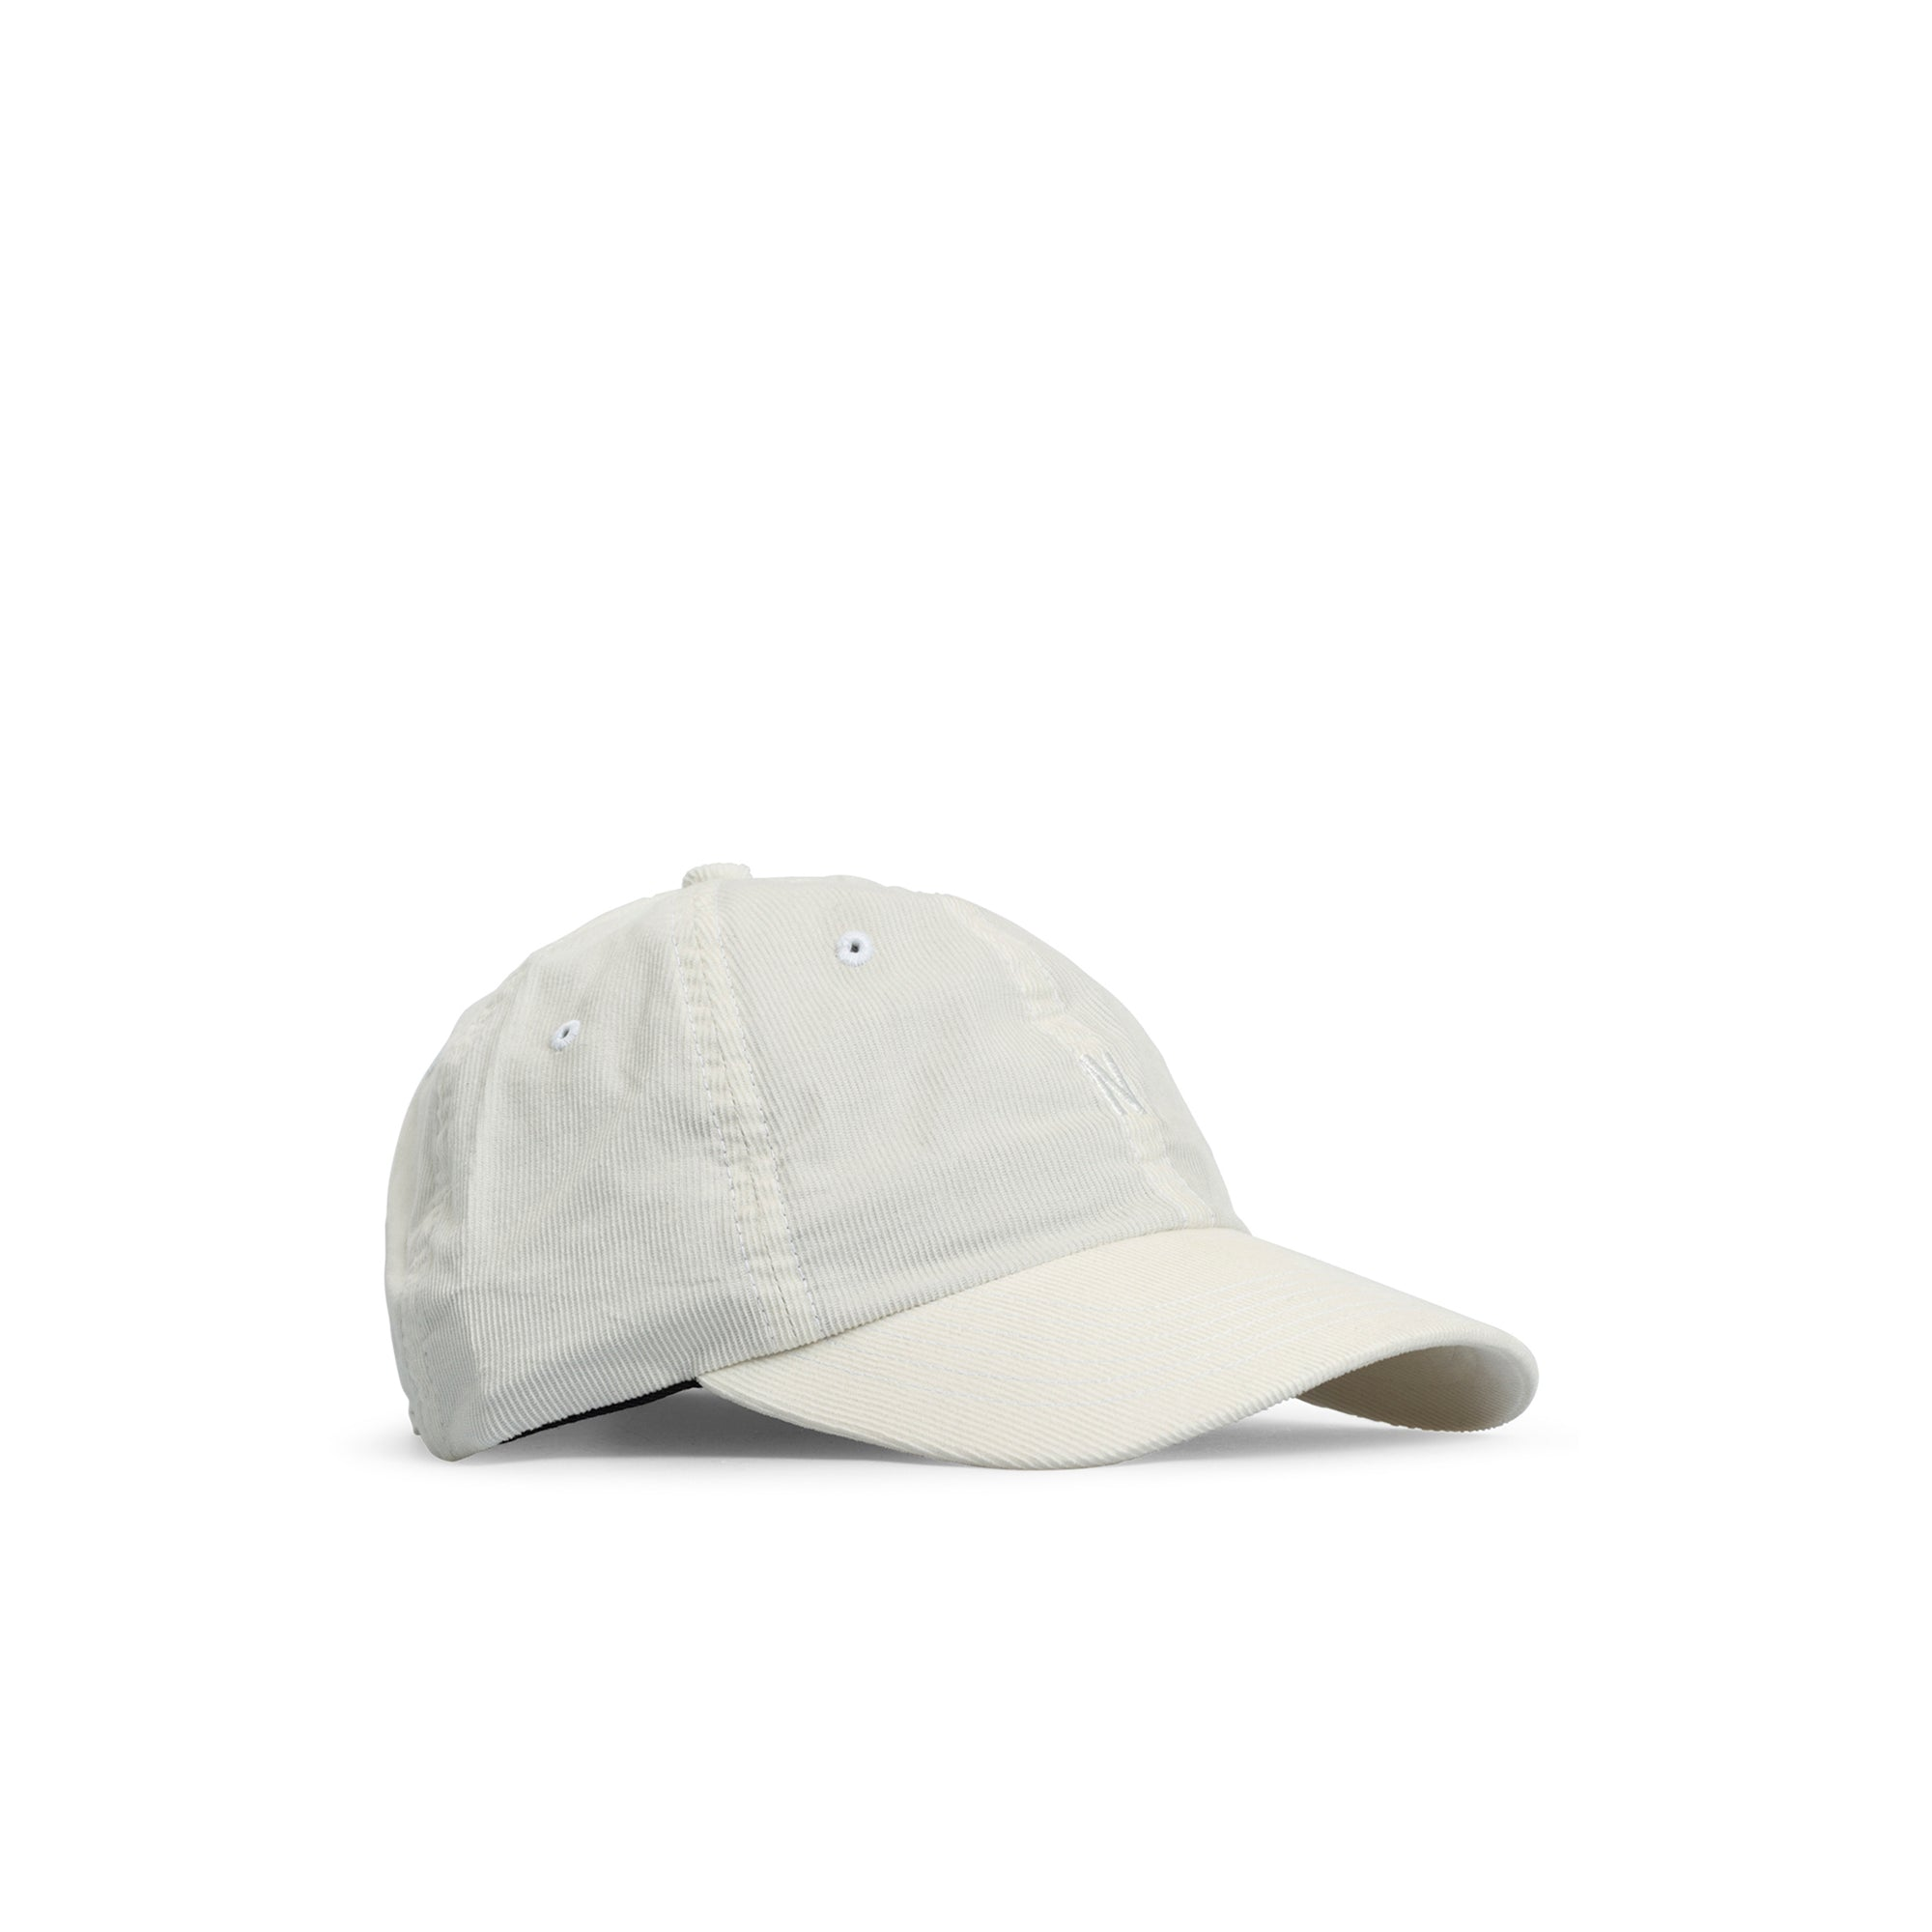 Norse Projects Baby Corduroy Sports Cap: Oatmeal - The Union Project